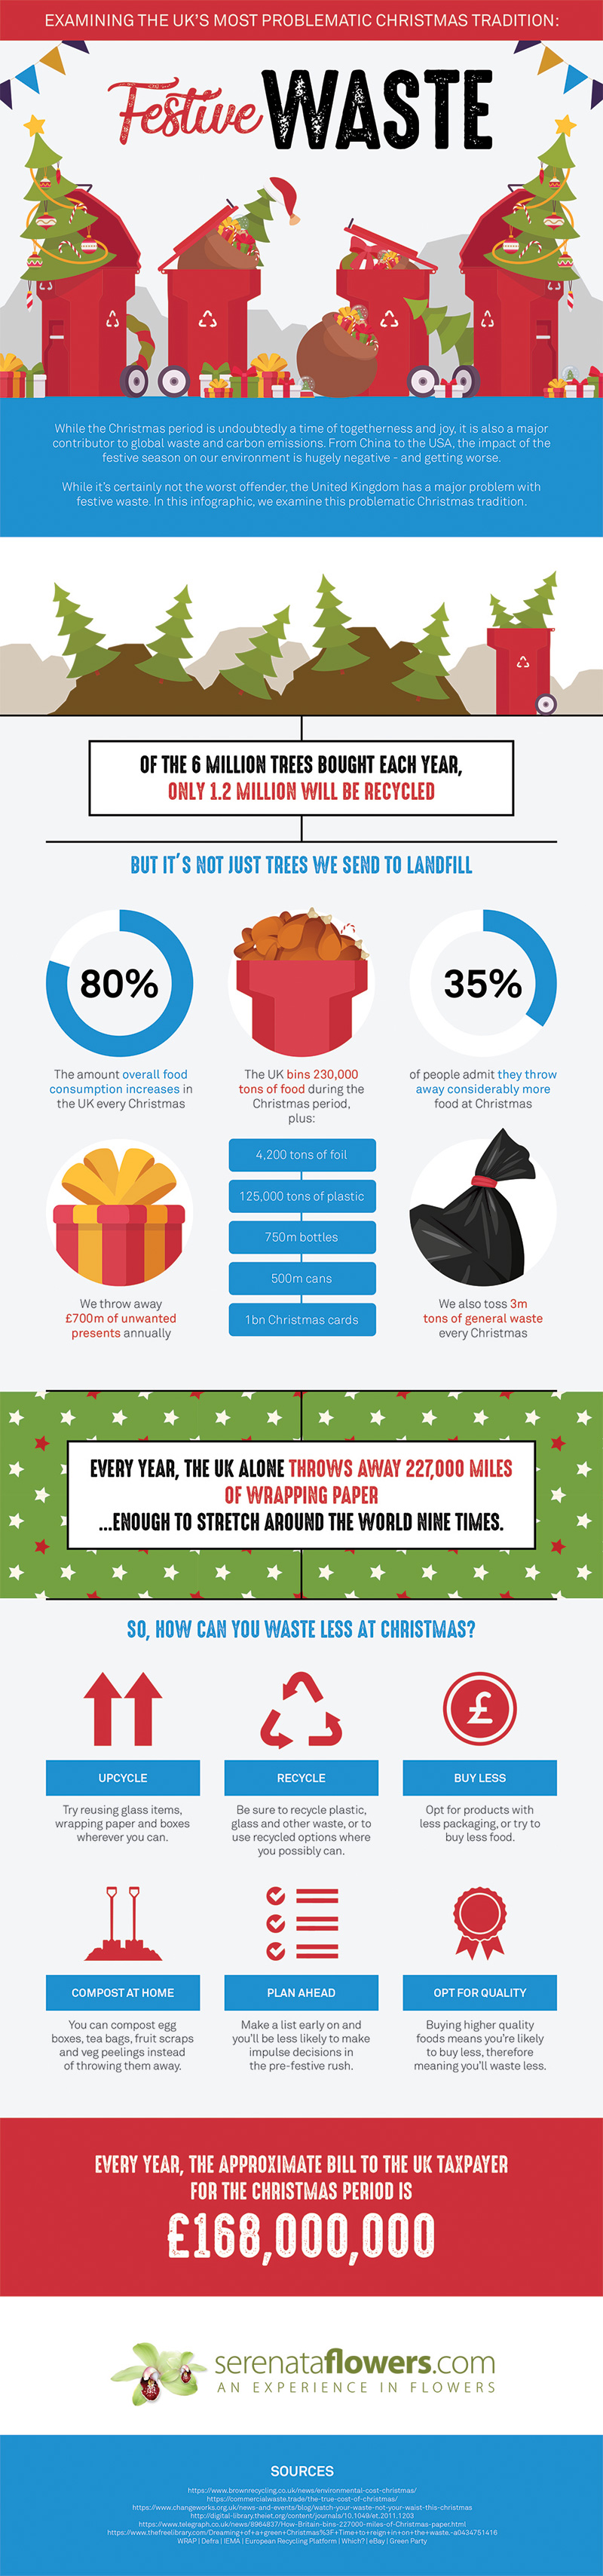 The Cost of Christmas Waste